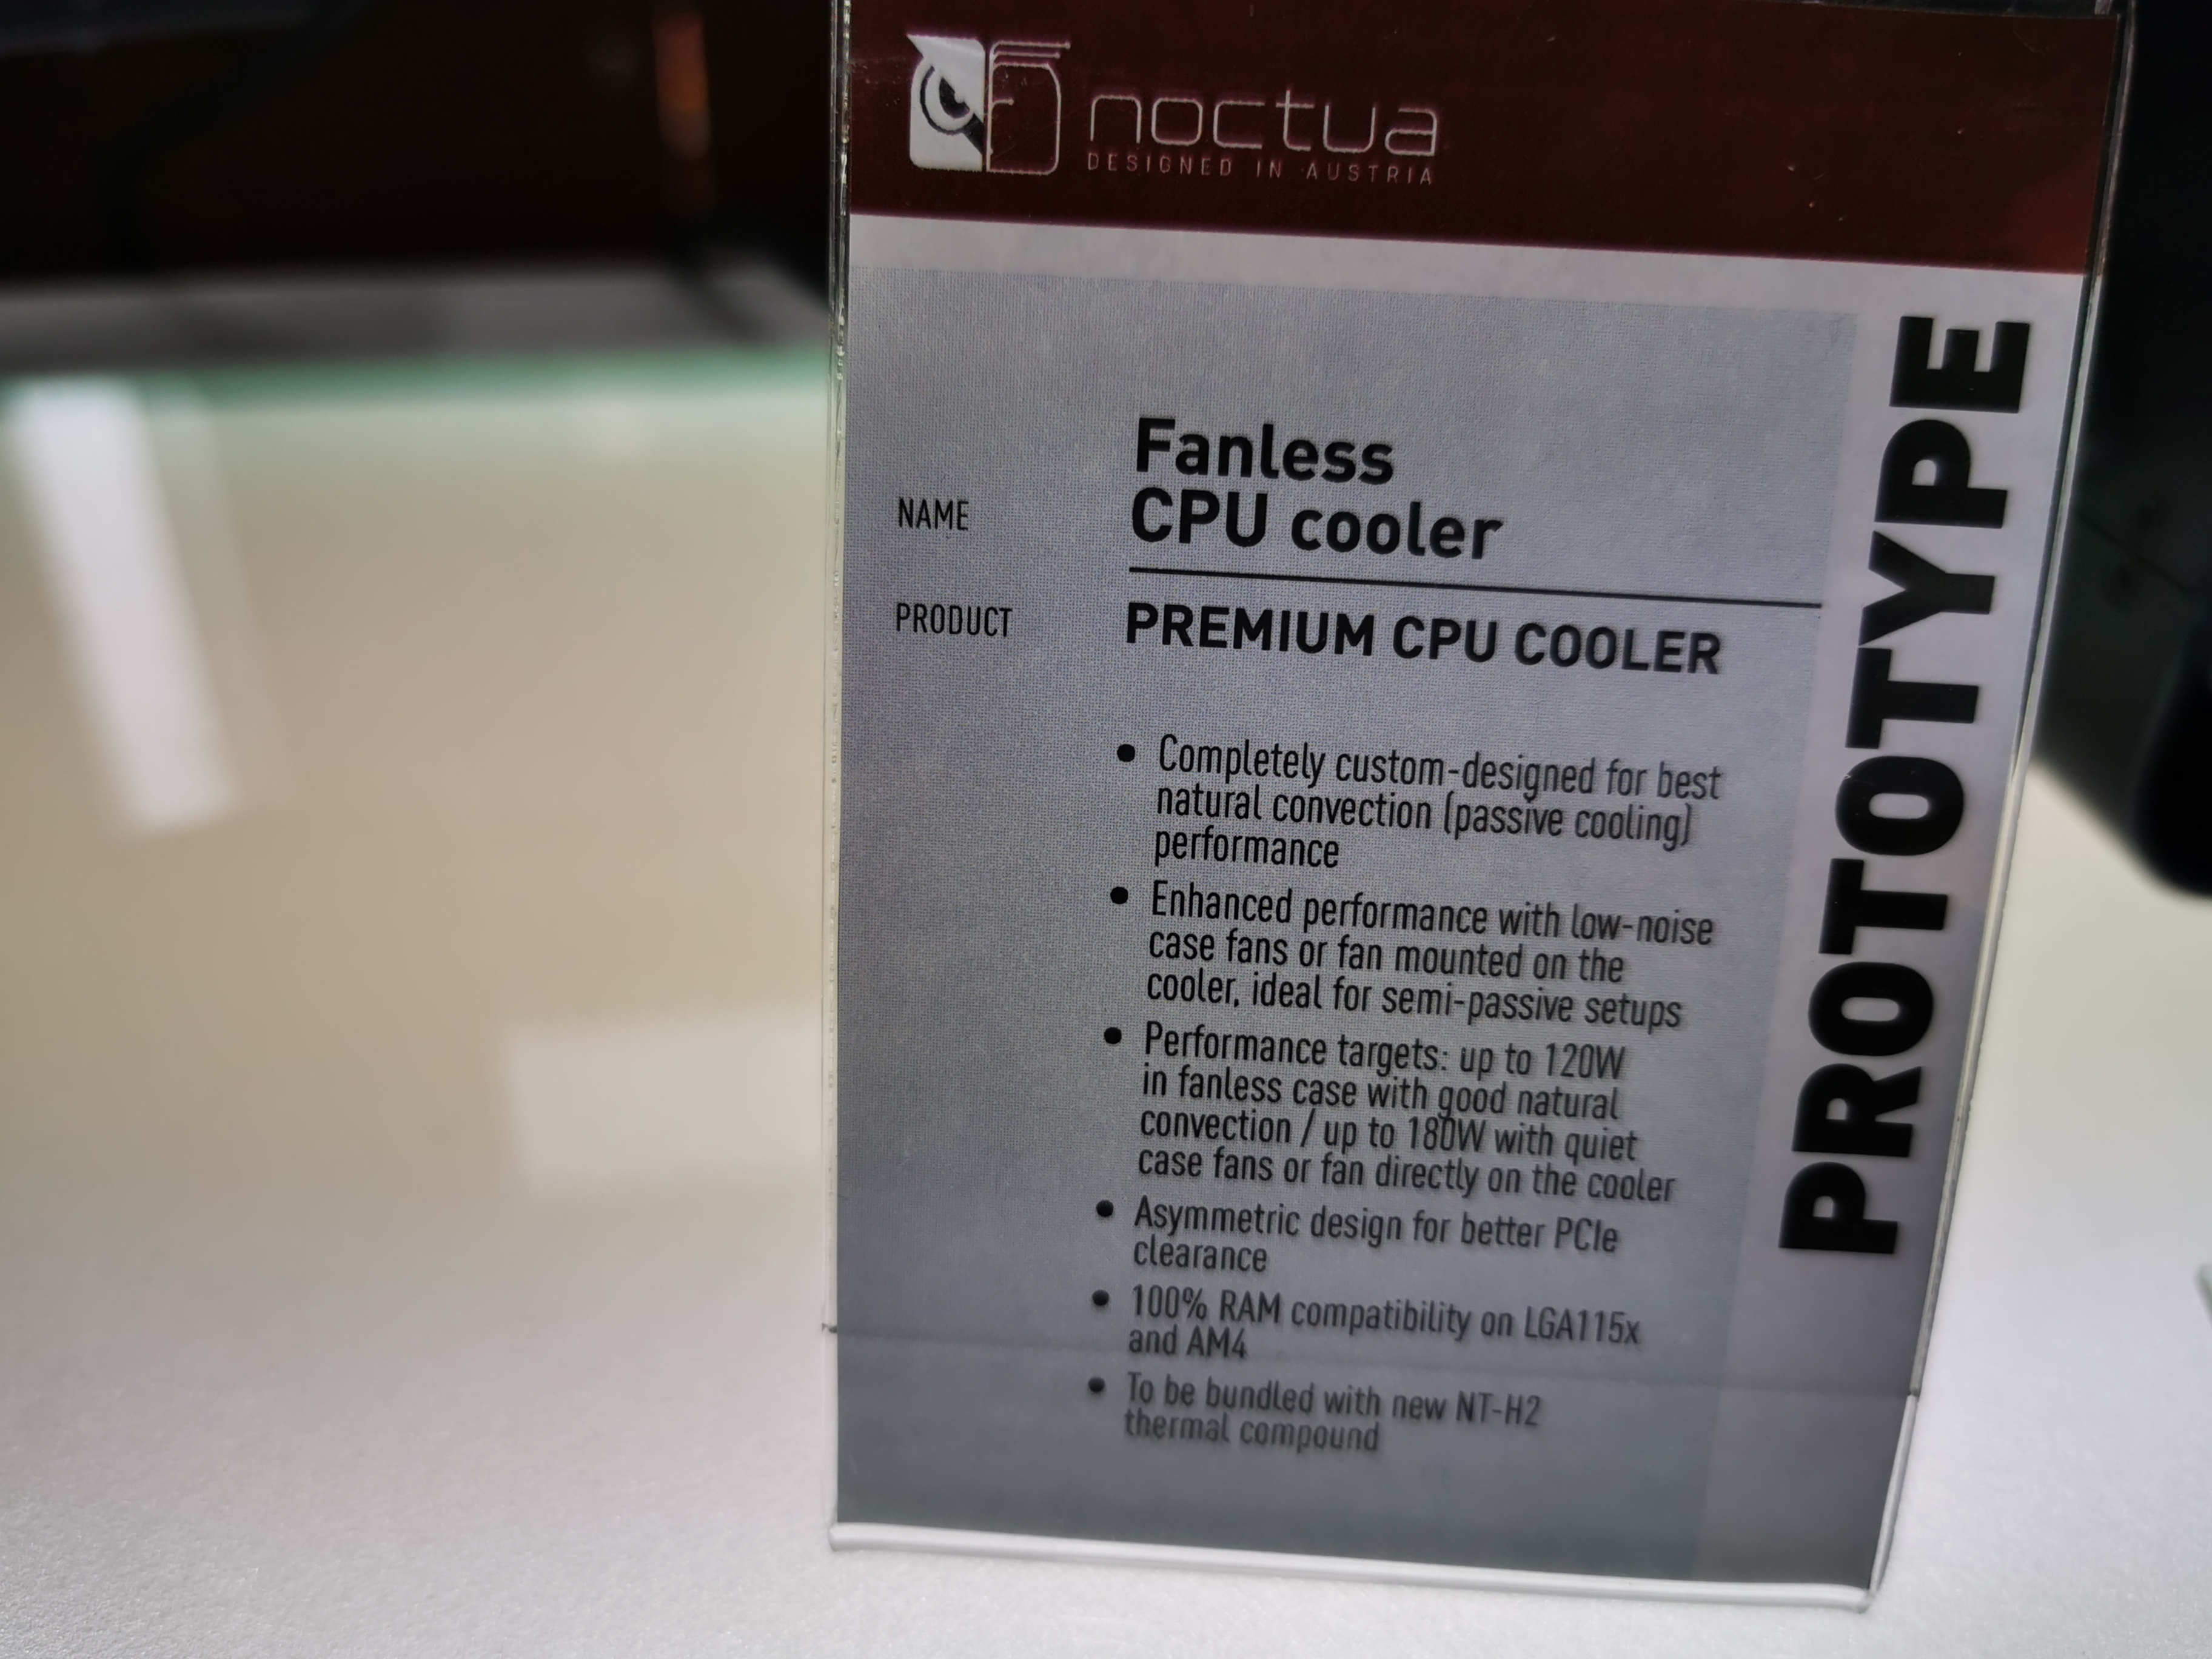 Best Quiet Cpu Cooler 2020 Noctua Concept Fanless CPU Cooler: Up to 120W Of Cooling Performance